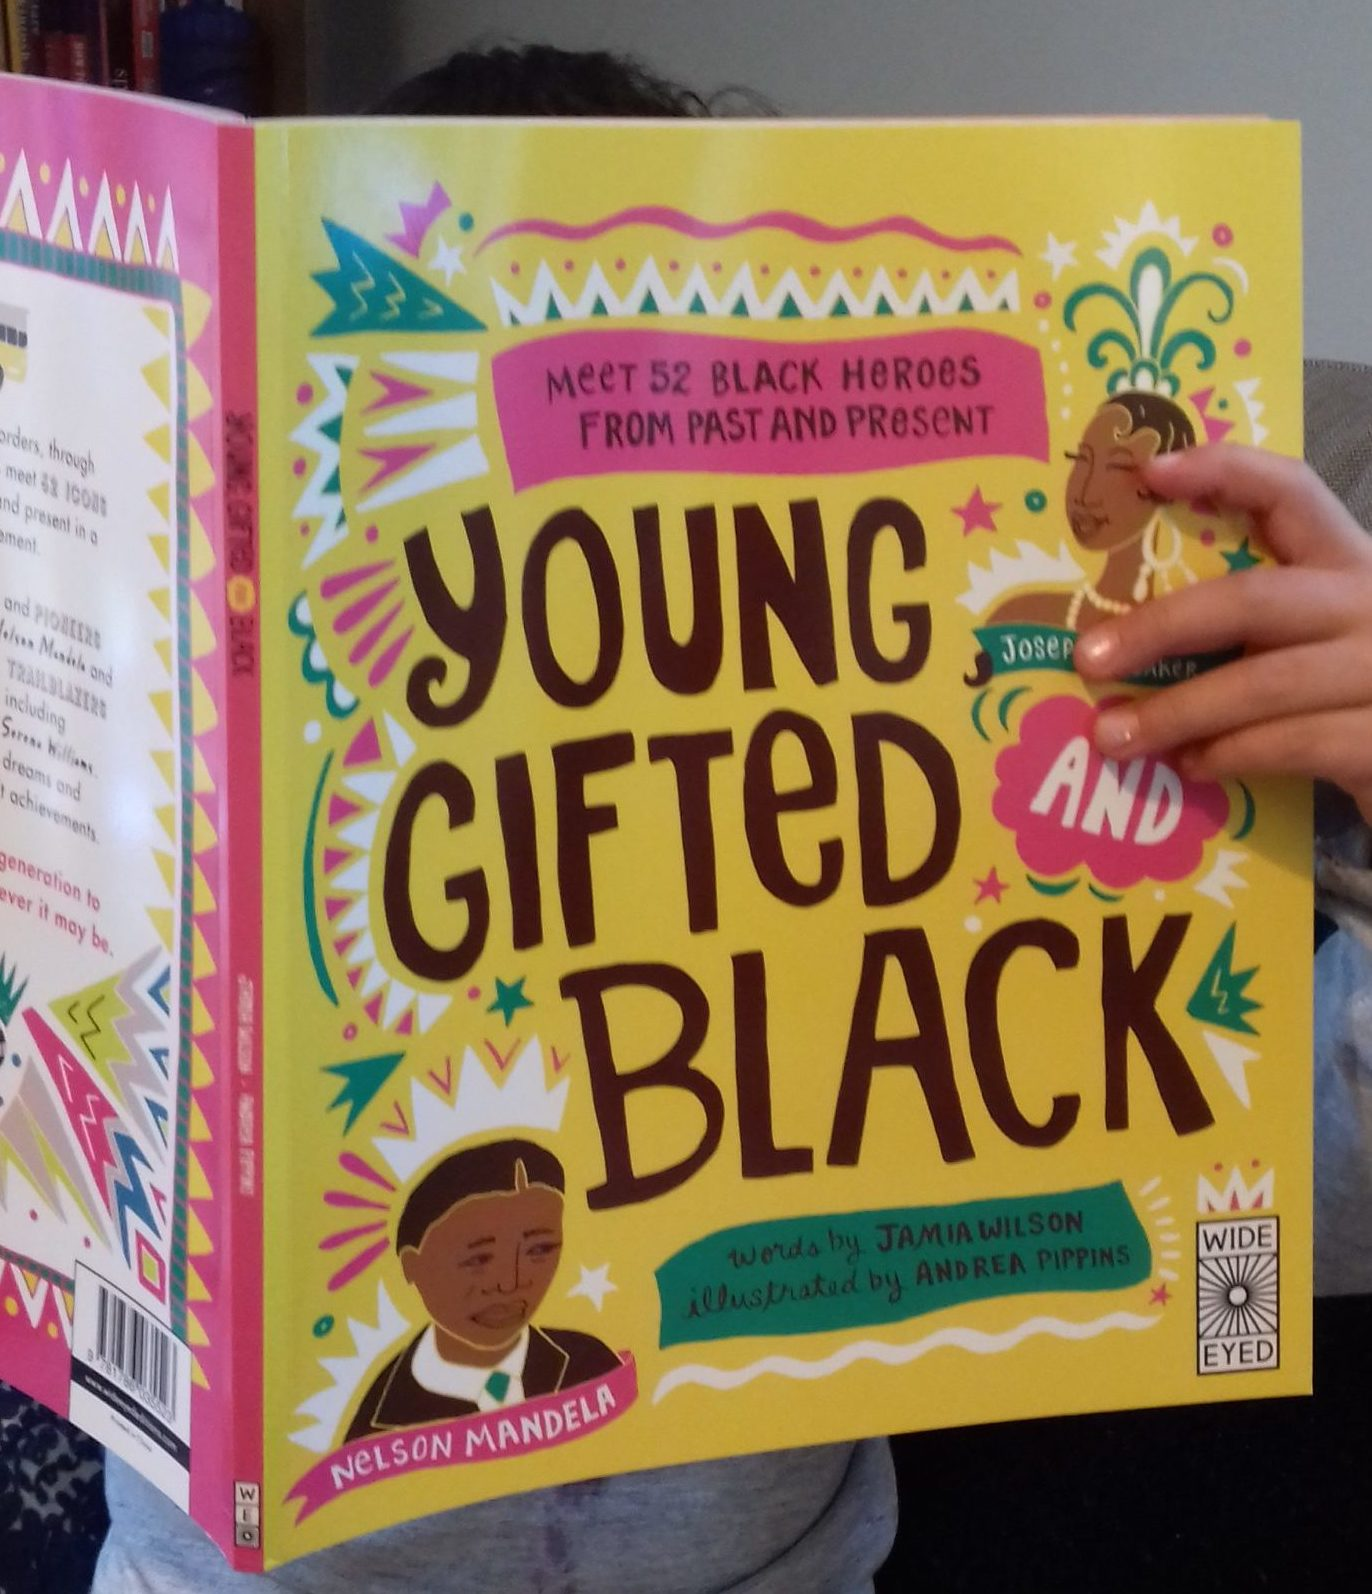 Young, gifted and black - The best books for kids about race that they need on their bookshelves. in classrooms and in libraries. These 25+ suggestions have all been enjoyed by our family, and are guaranteed to raise healthy discussions about cultural diversity.